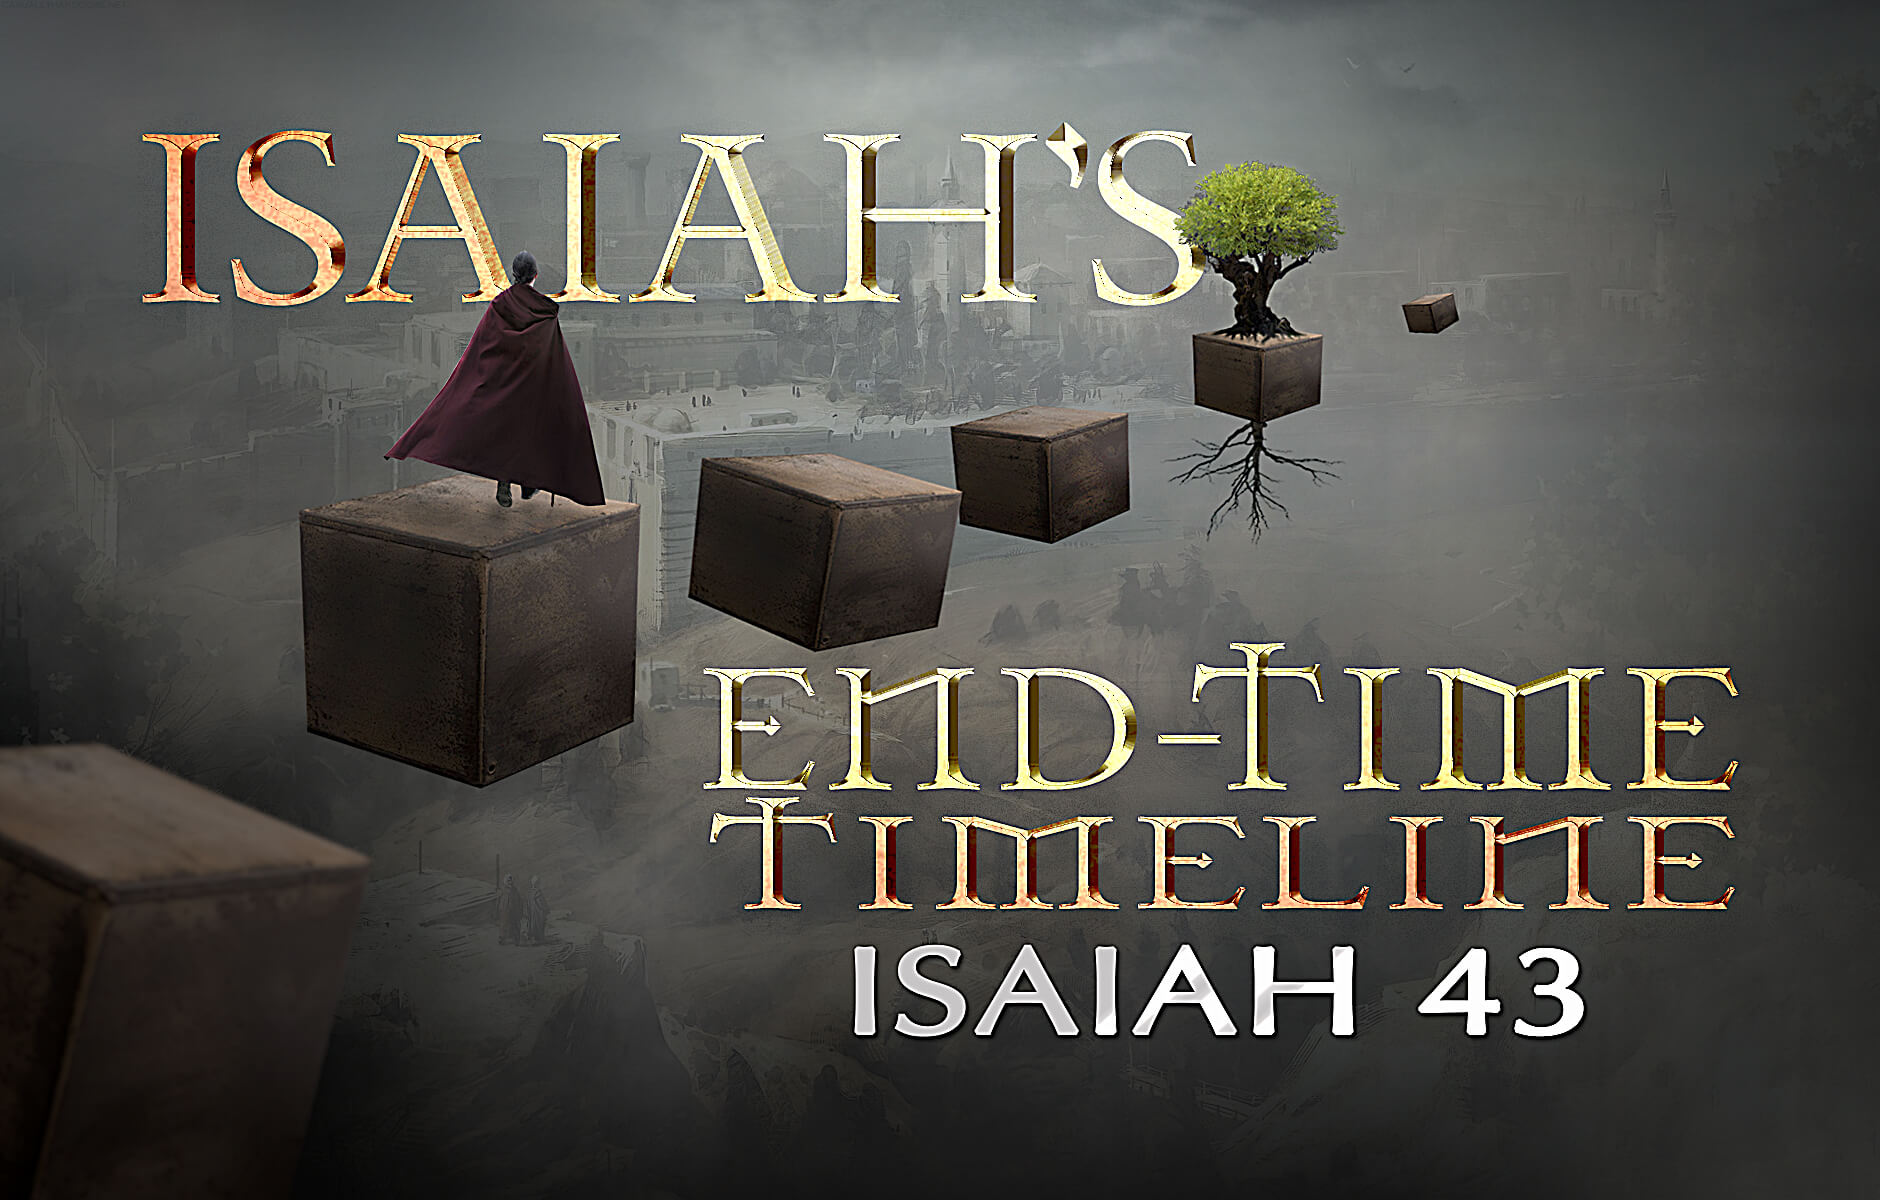 Isaiah's End-time Timeline Chapter 43